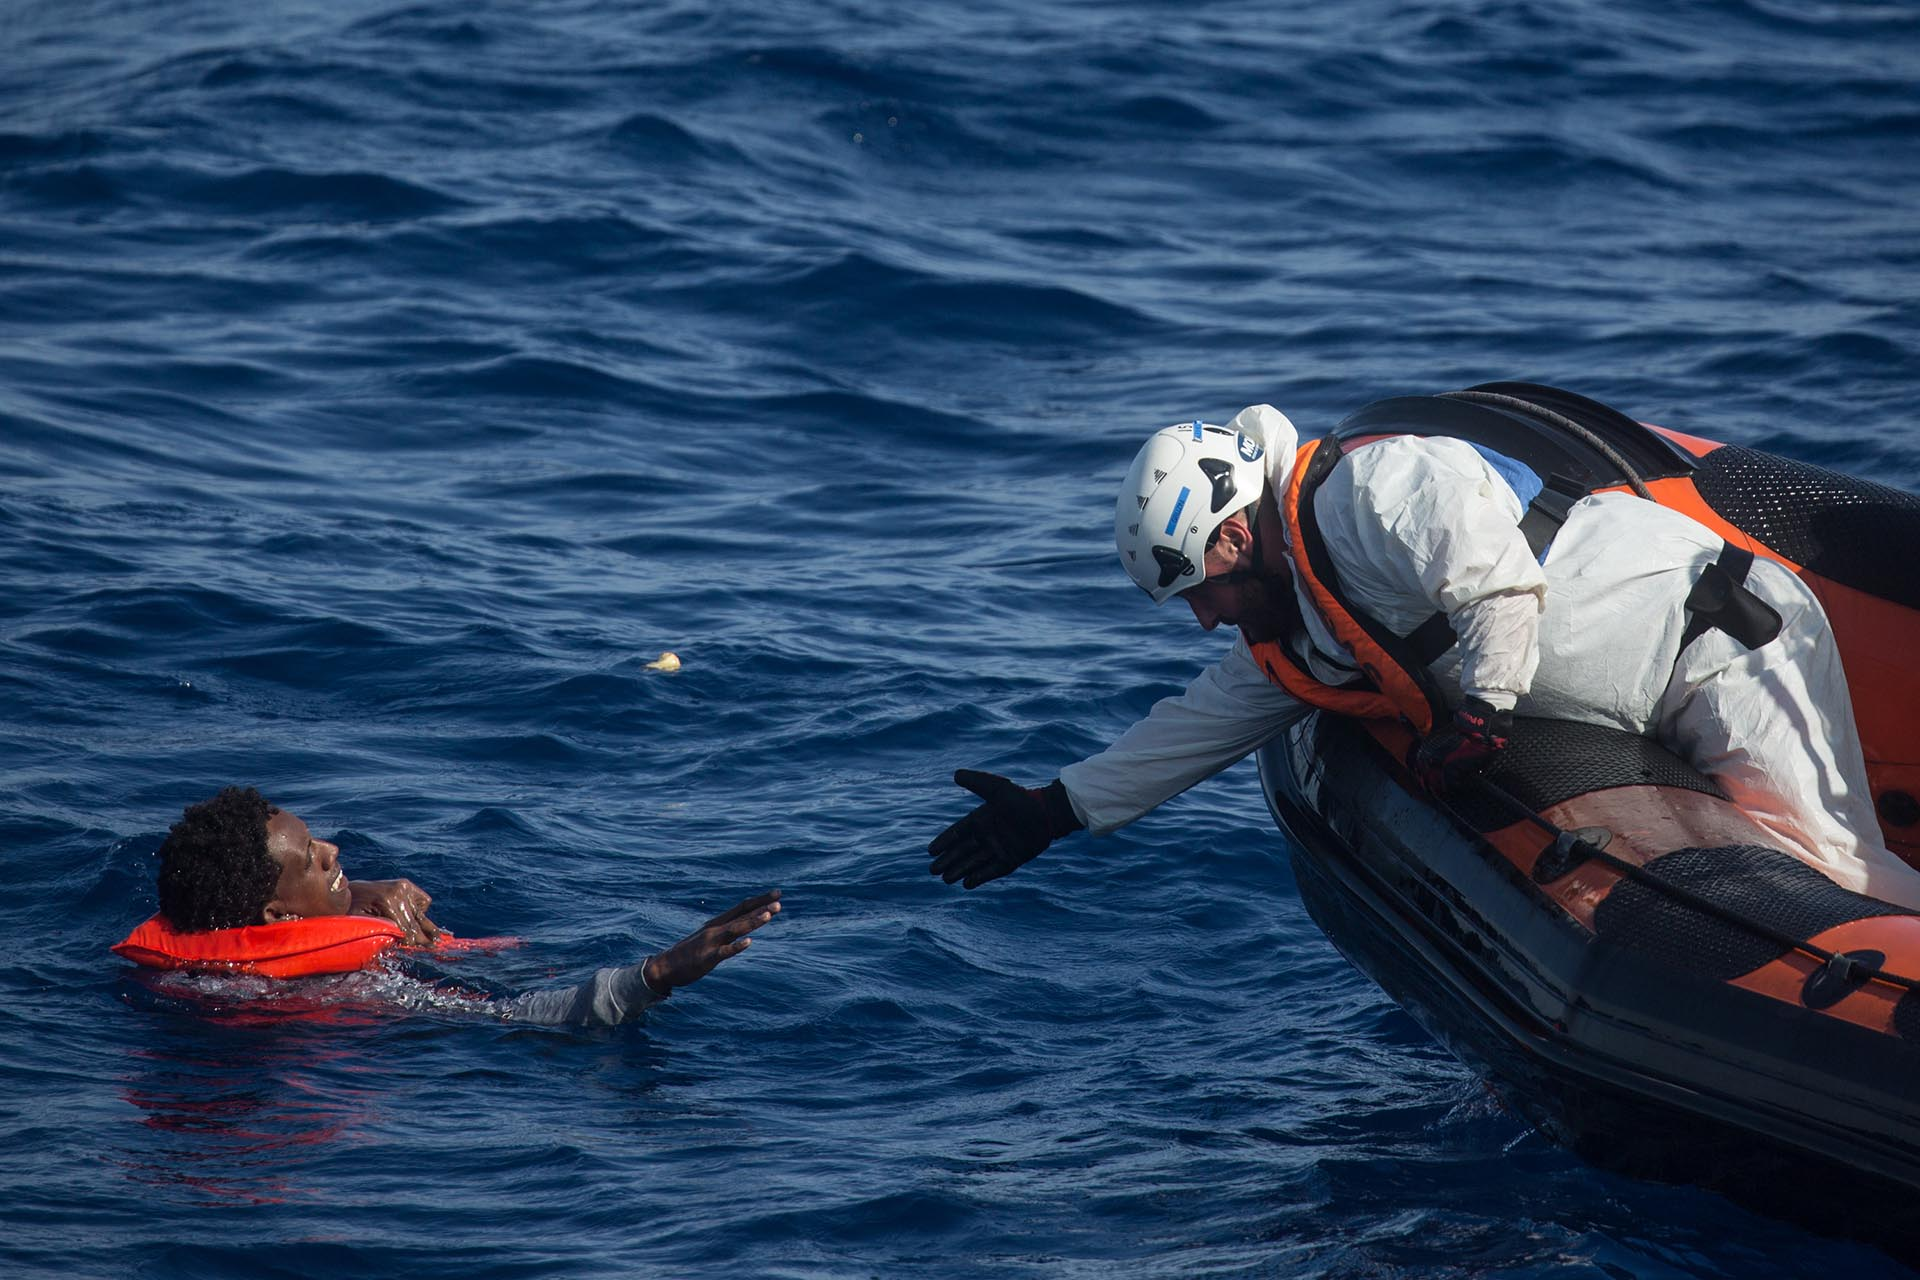 Search And Rescue Enters Peak Season For MOAS Operations